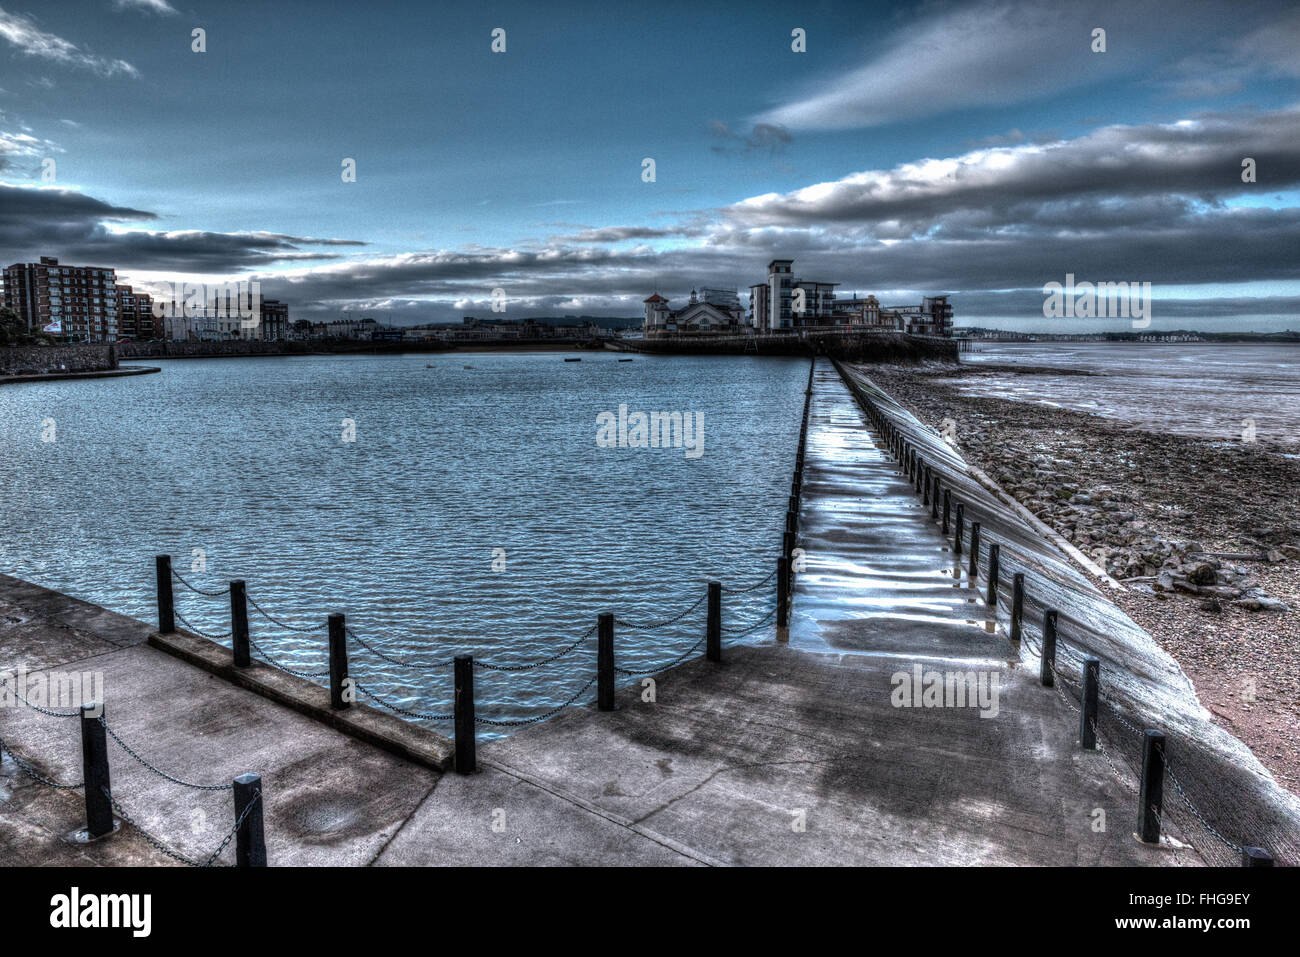 Knightstone island and Marine Lake Weston-super-Mare Somerset England uk in unique different HDR - Stock Image